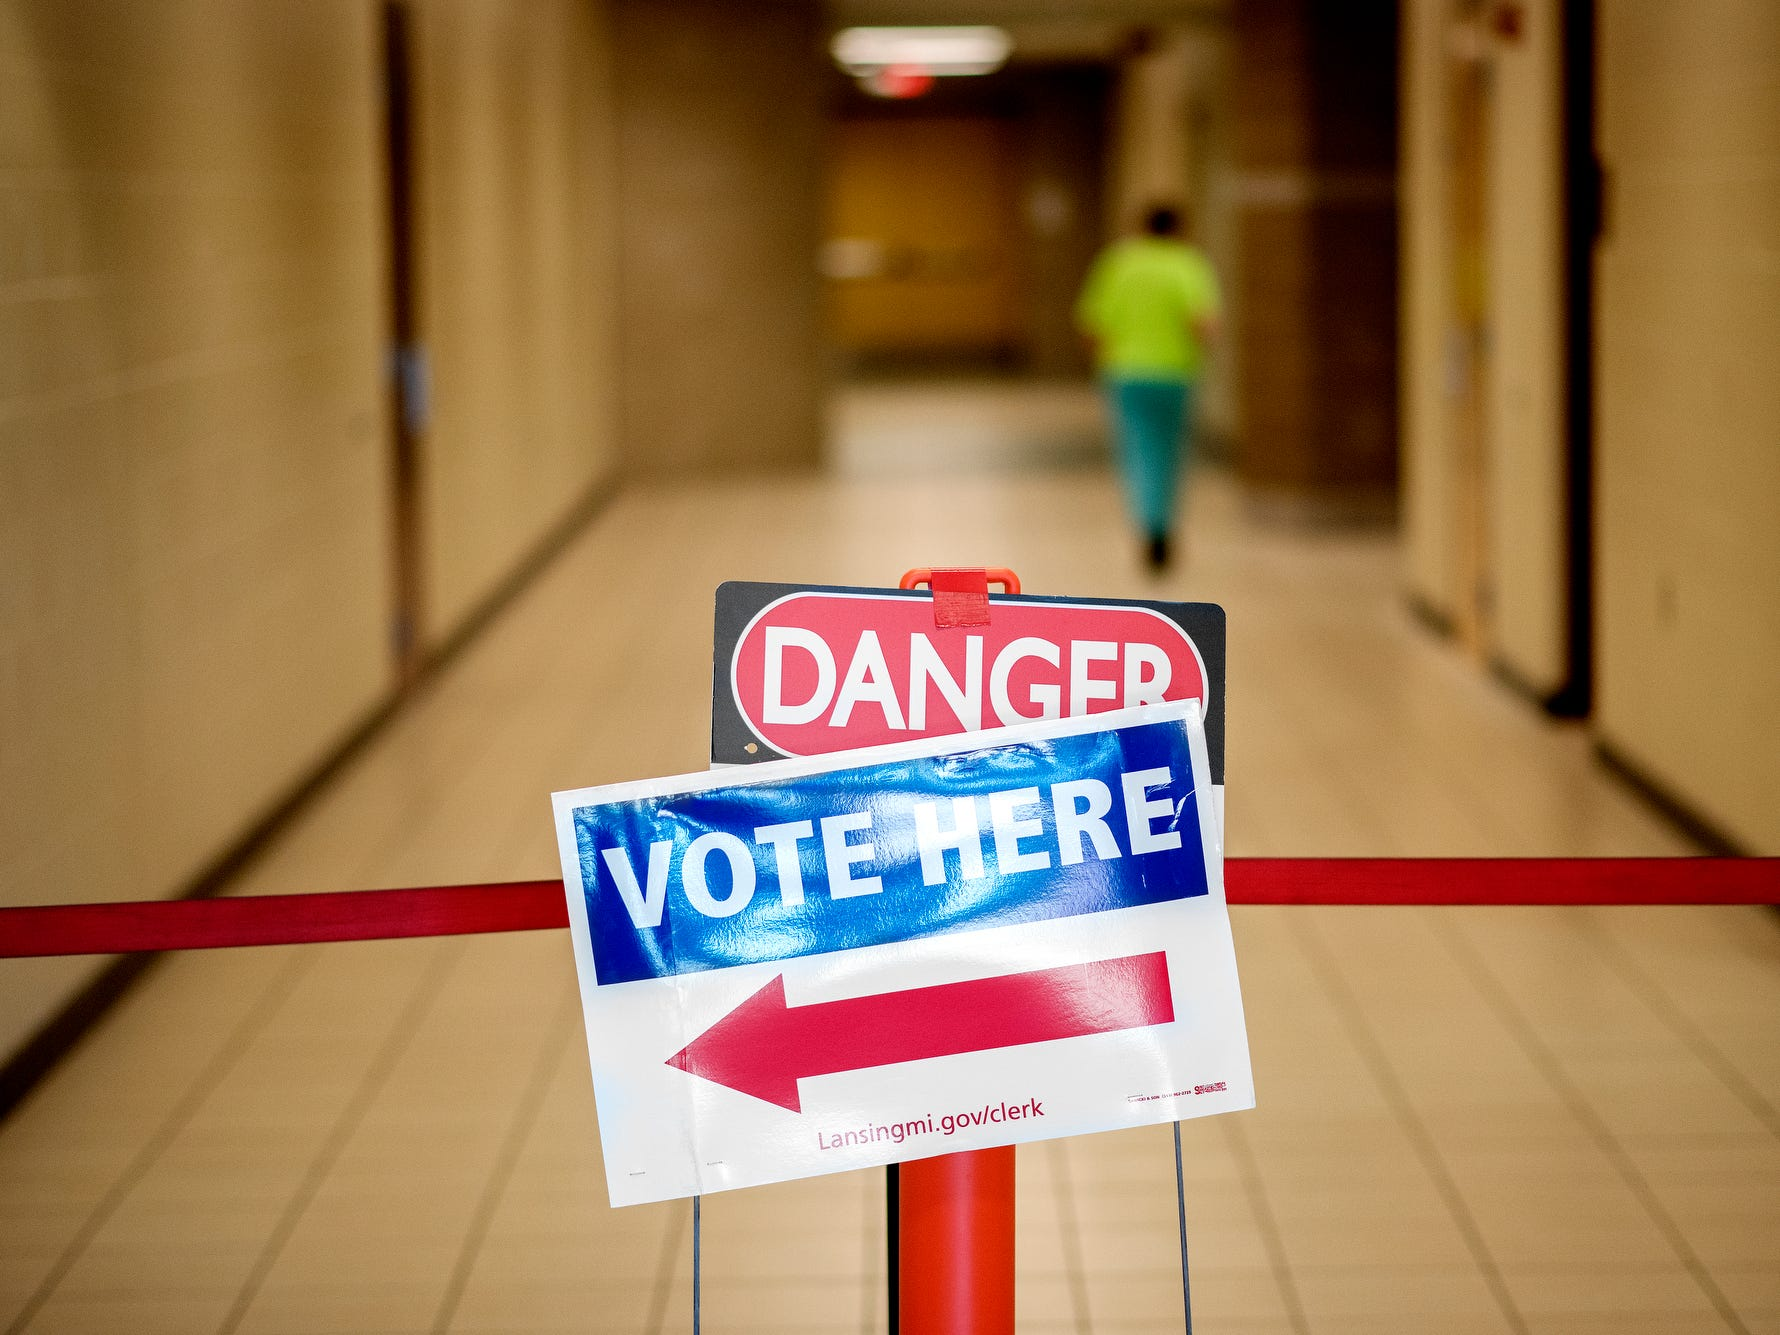 """A """"vote here"""" signs is placed in front of a """"danger"""" sign outside the polling place at Pattengill School on Tuesday, Aug. 7, 2018, in Lansing. Some areas in the building are blocked off due to construction on the school."""